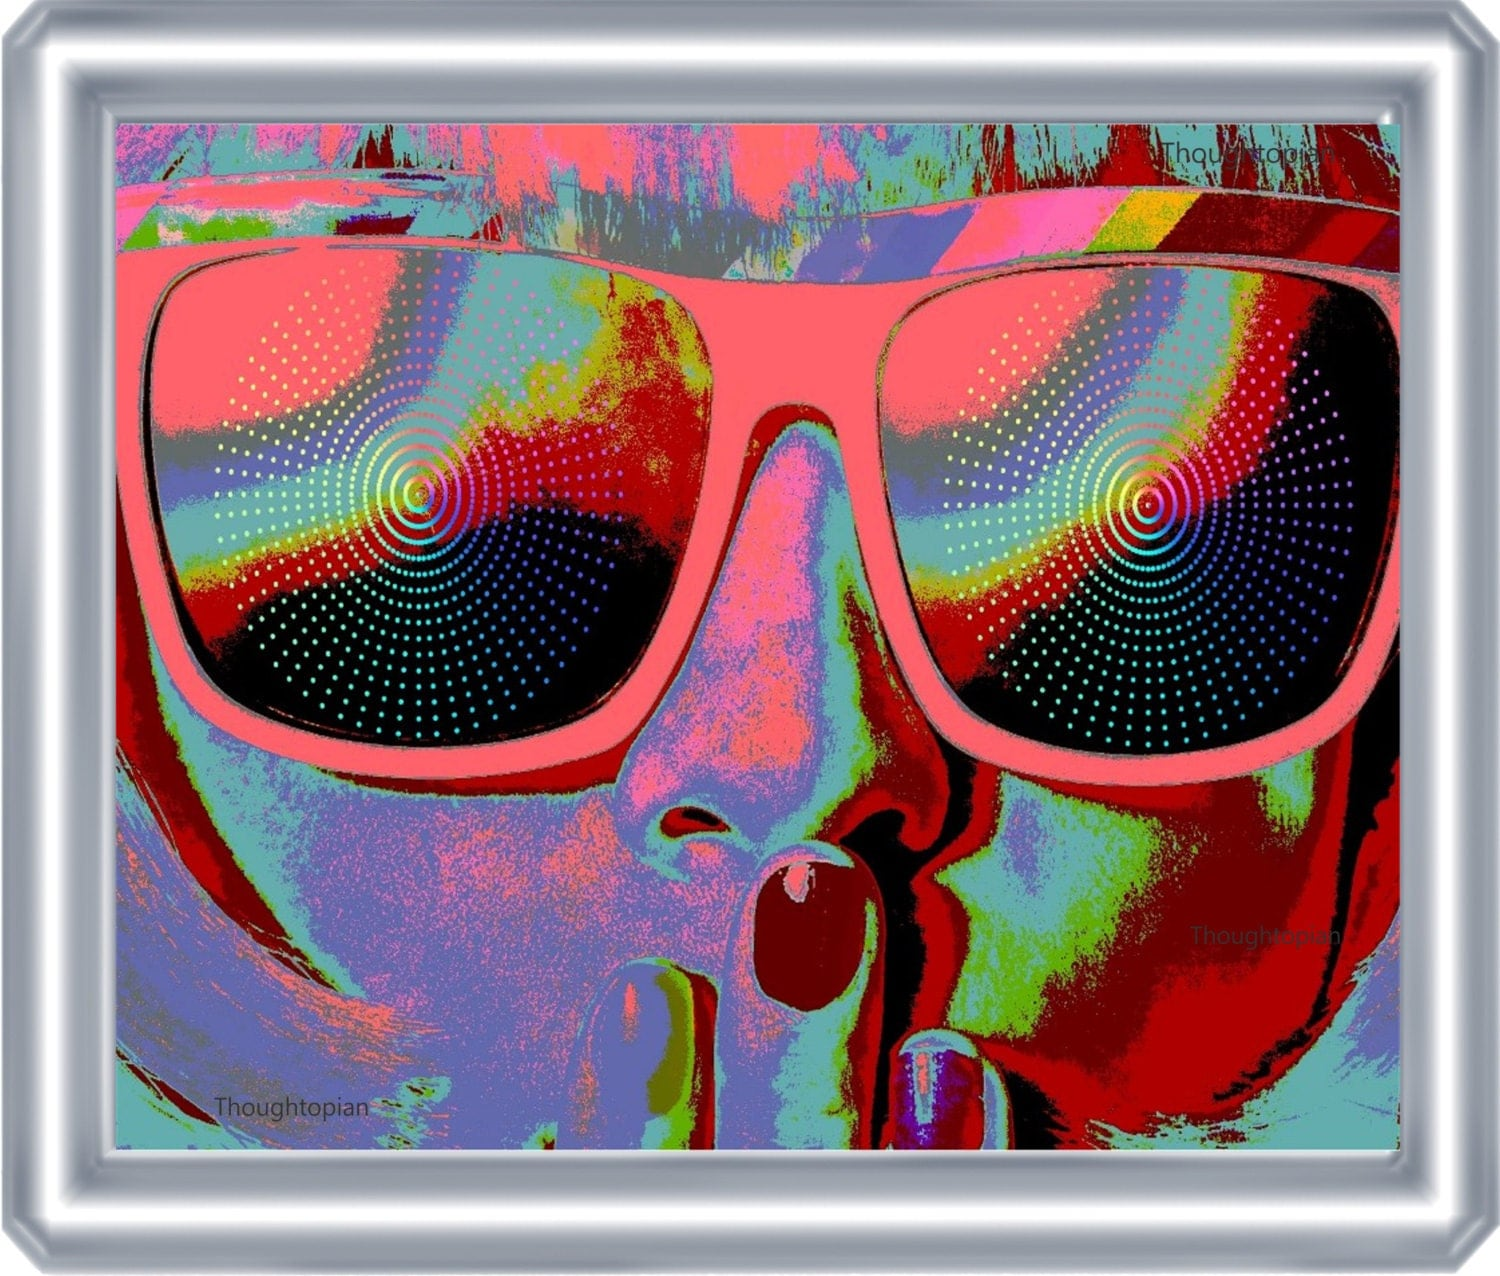 Sunglasses Trippy Art Print 8 x 10 Psychedelic Visionary